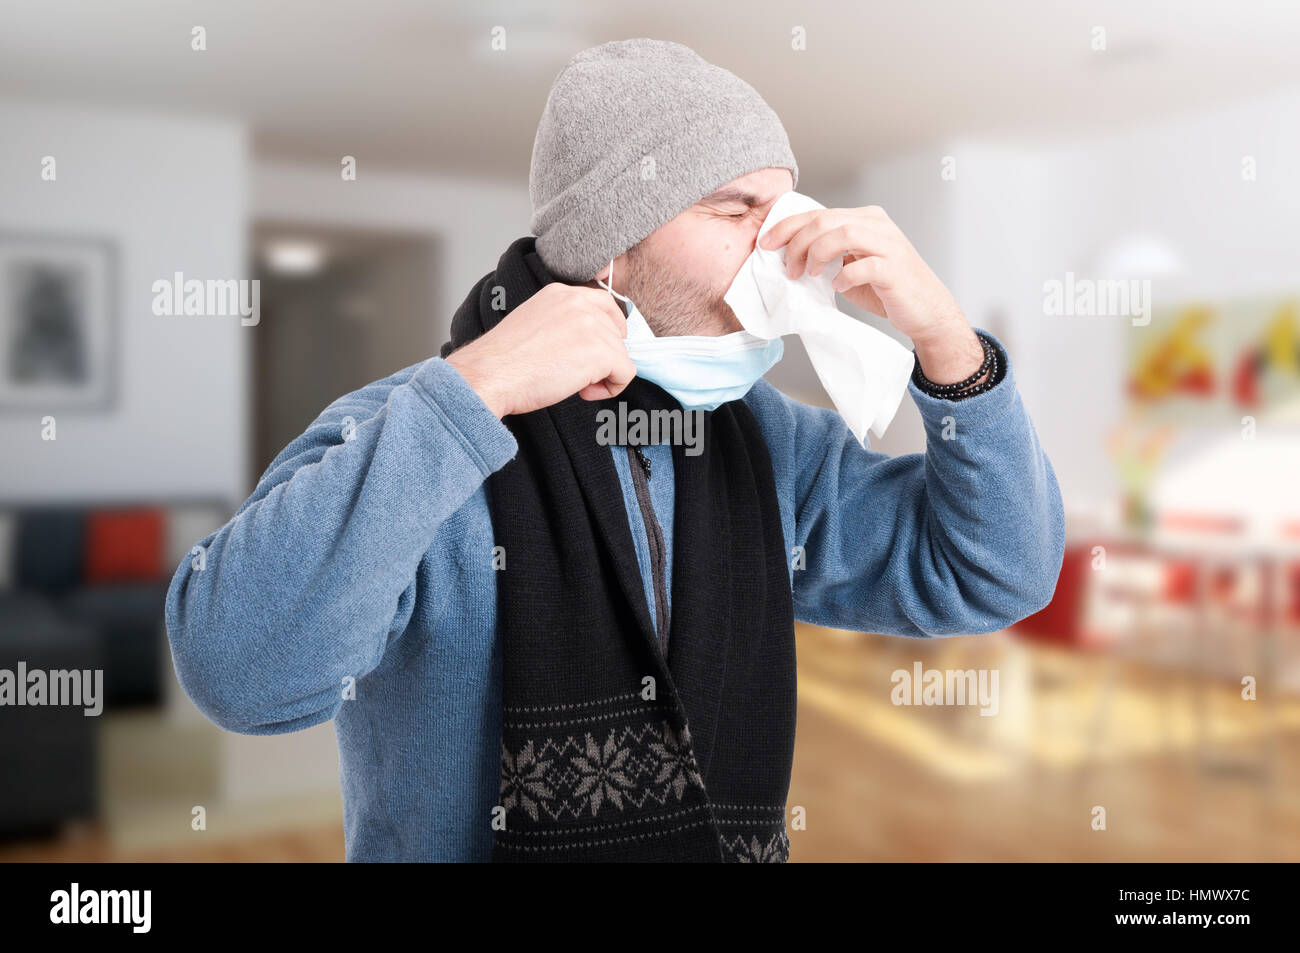 Man with flu and immunity problem blowing his nose into napkin as sickness concept - Stock Image